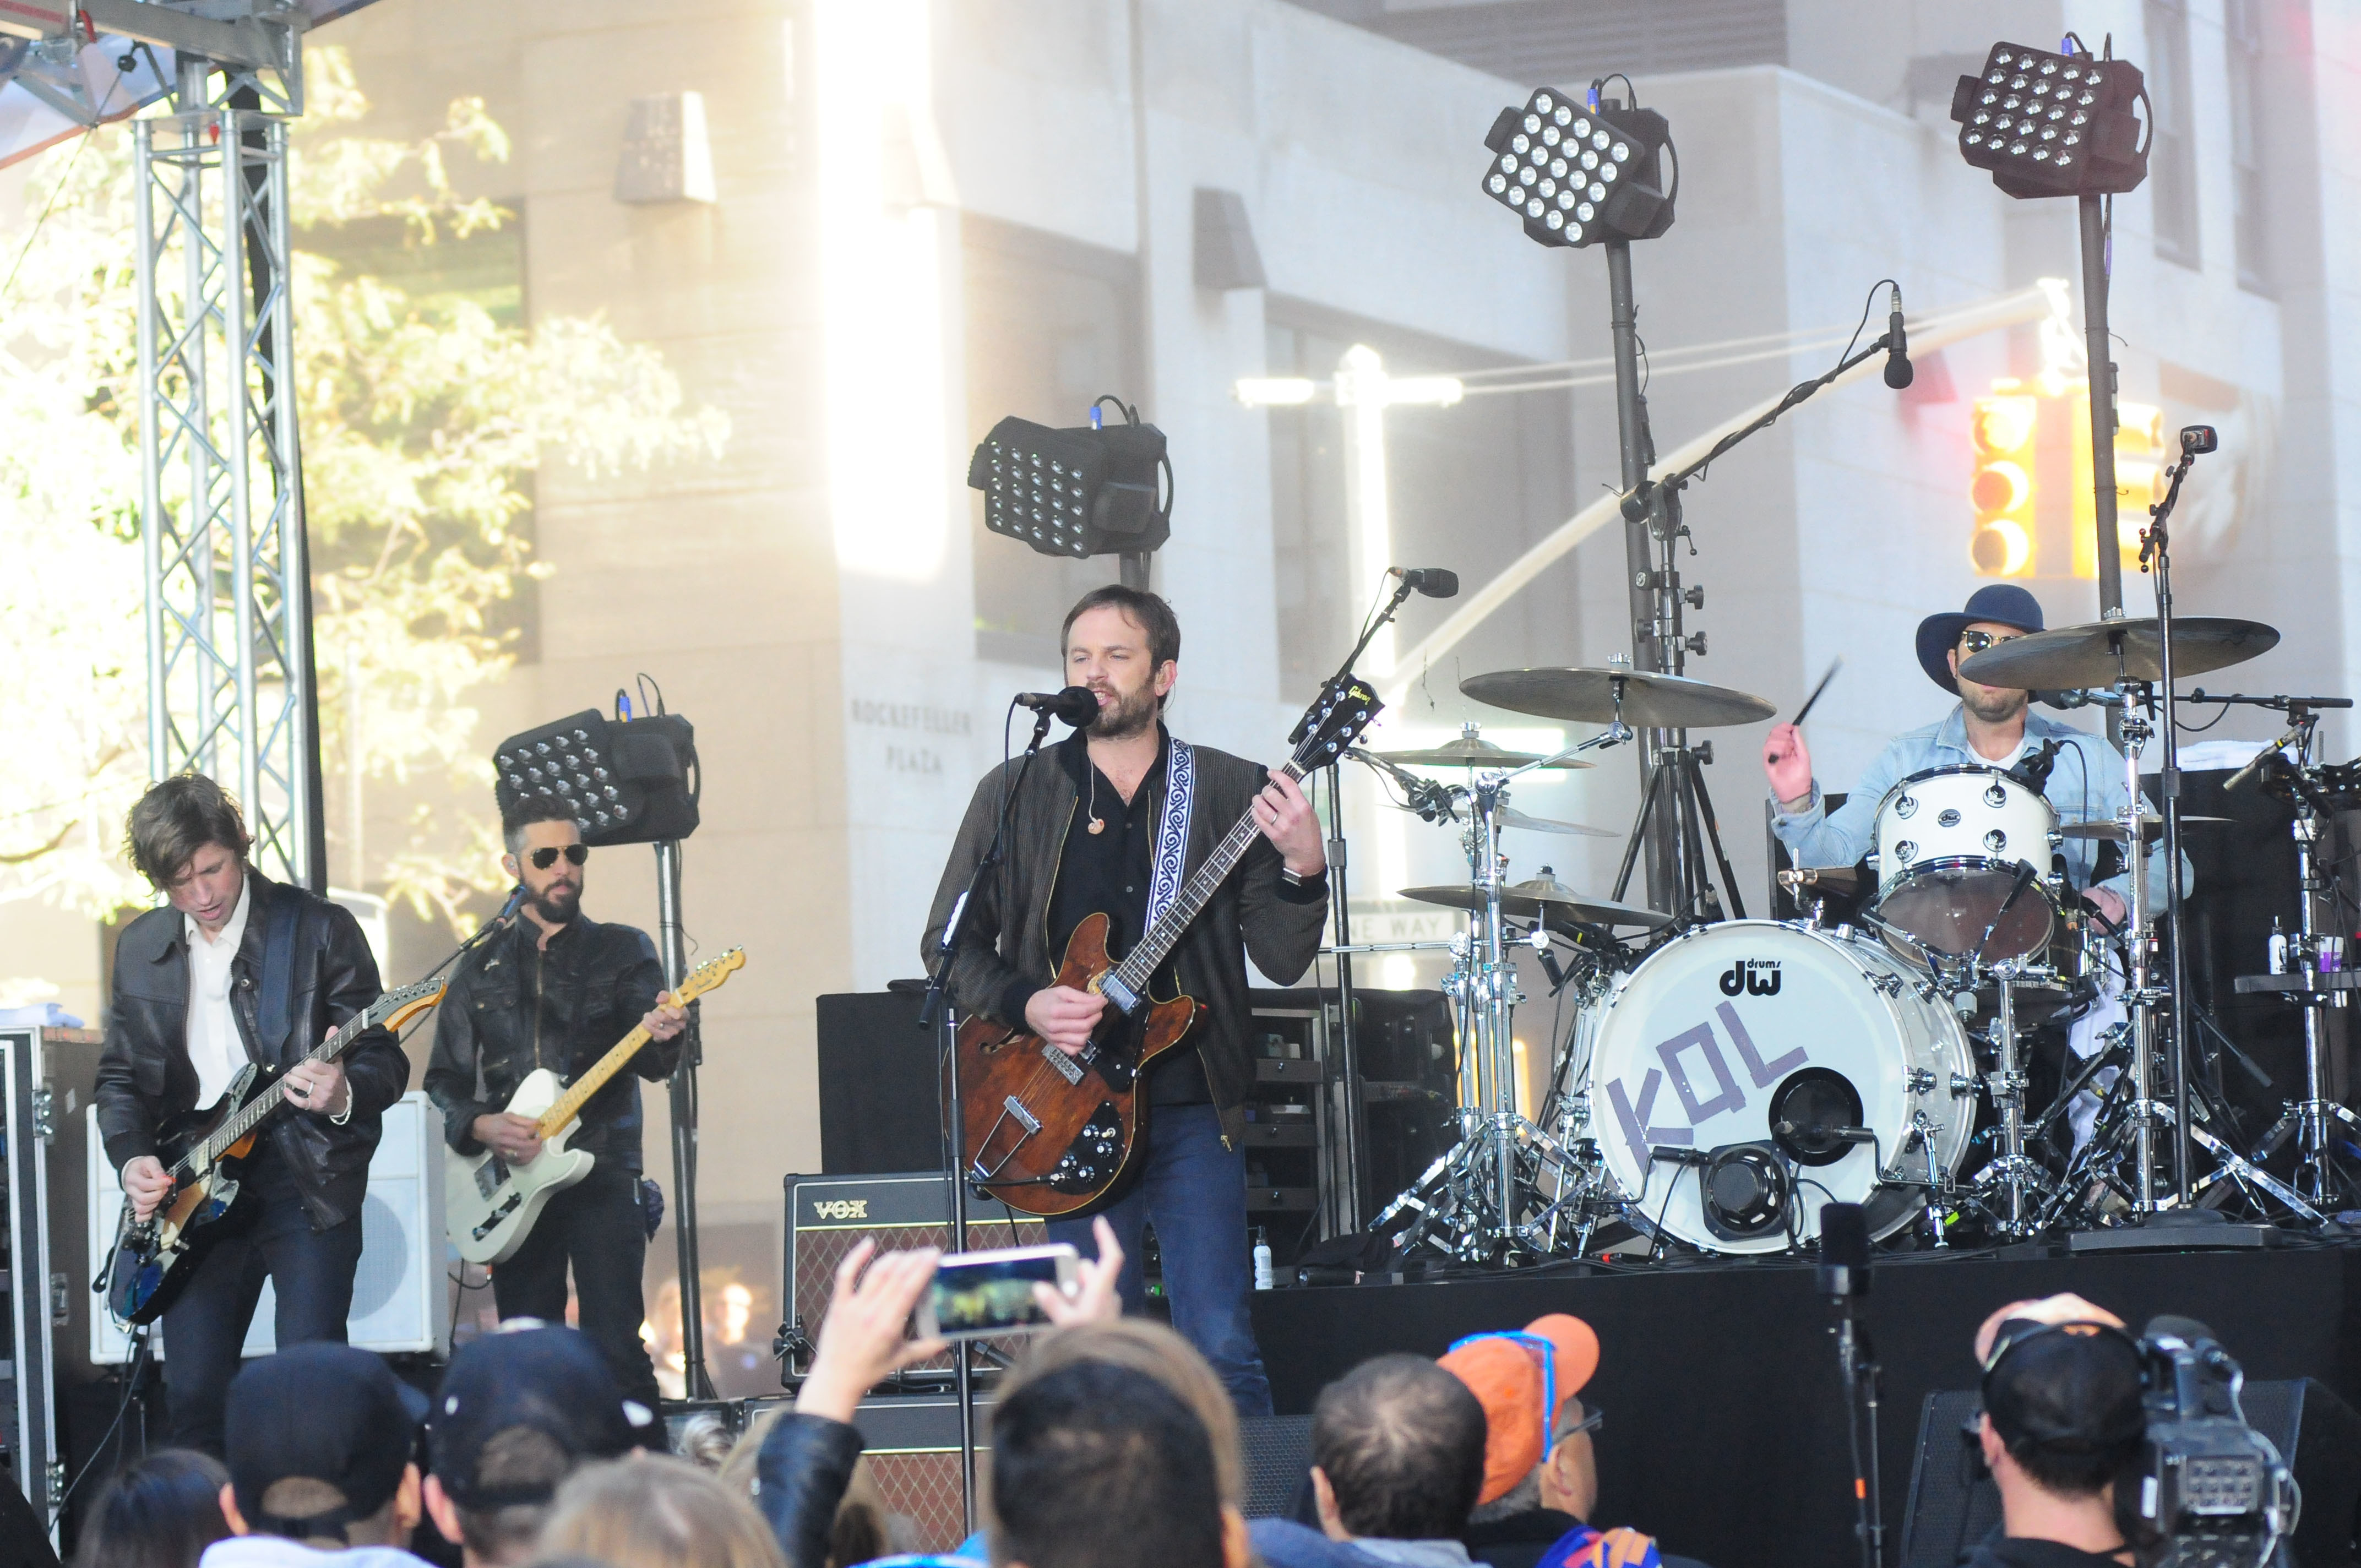 Kings Of Leon performing live on NBC's Today show as part of the concert series  Featuring: Kings Of Leon, Caleb Followill, Jared Followill, Nathan Followill, Matthew Followill Where: NY, New York, United States When: 14 Oct 2016 Credit: Dan Jackman/WENN.com